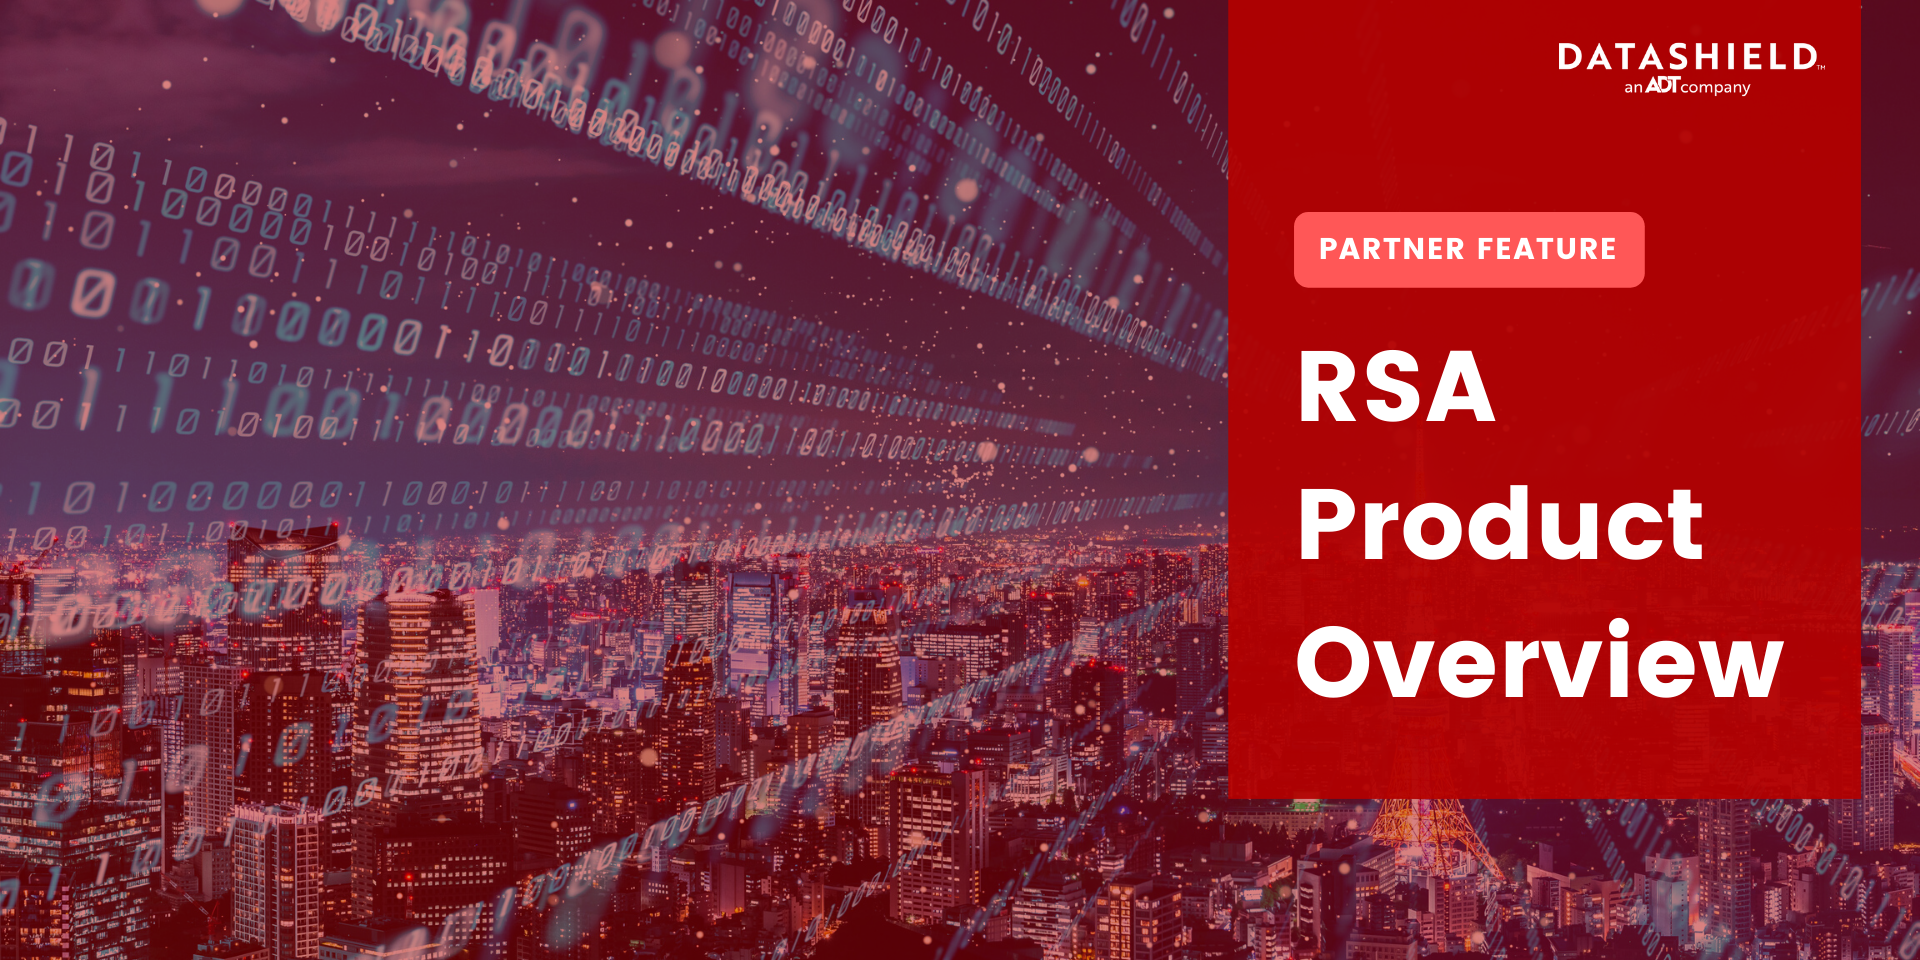 rsa overview